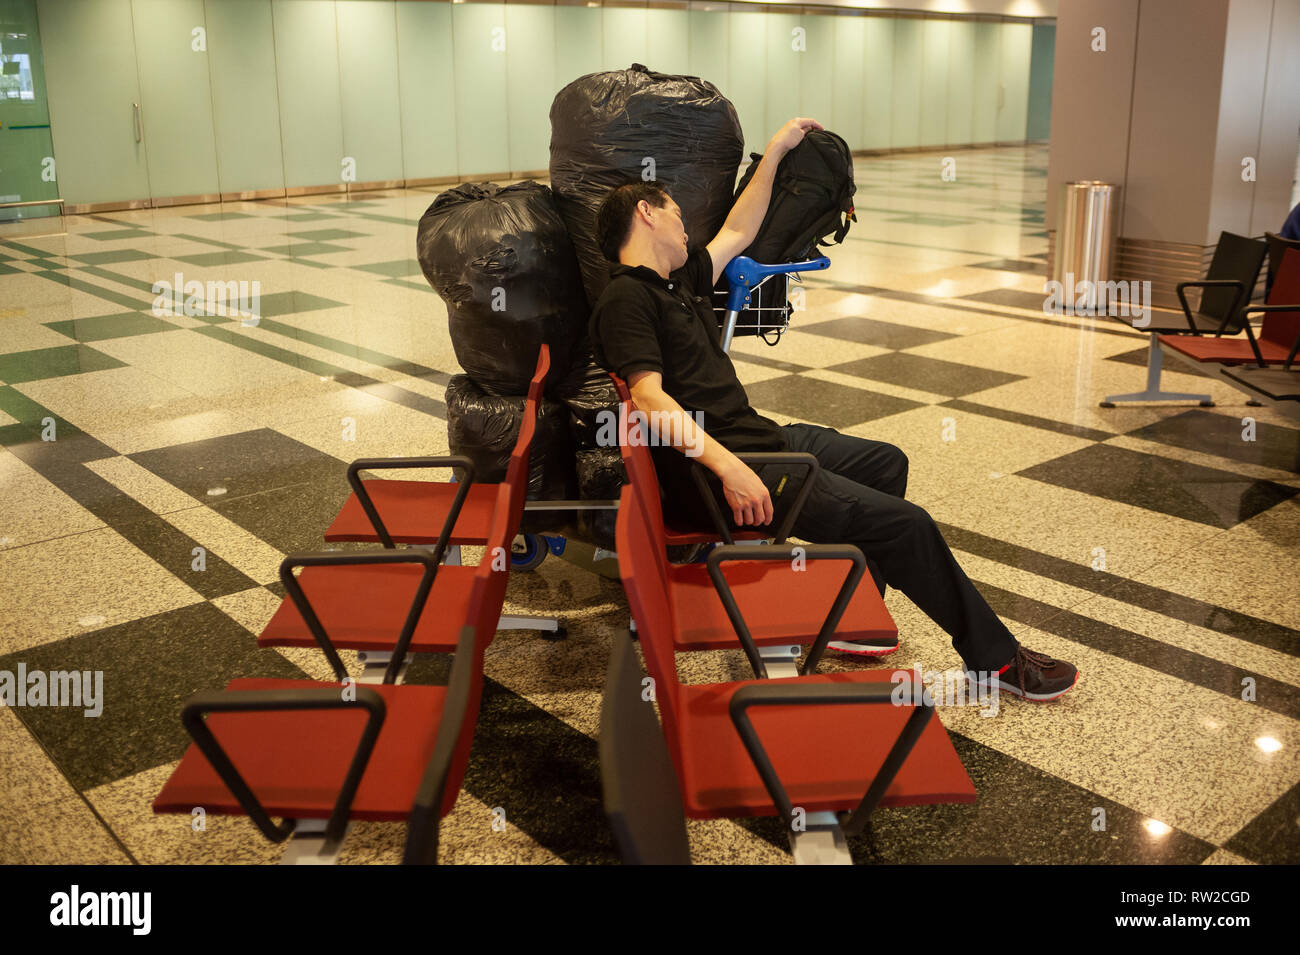 01.03.2019, Singapore, Republic of Singapore, Asia - A passenger is sleeping next to his luggage in a public area at Singapore's Changi Airport. - Stock Image